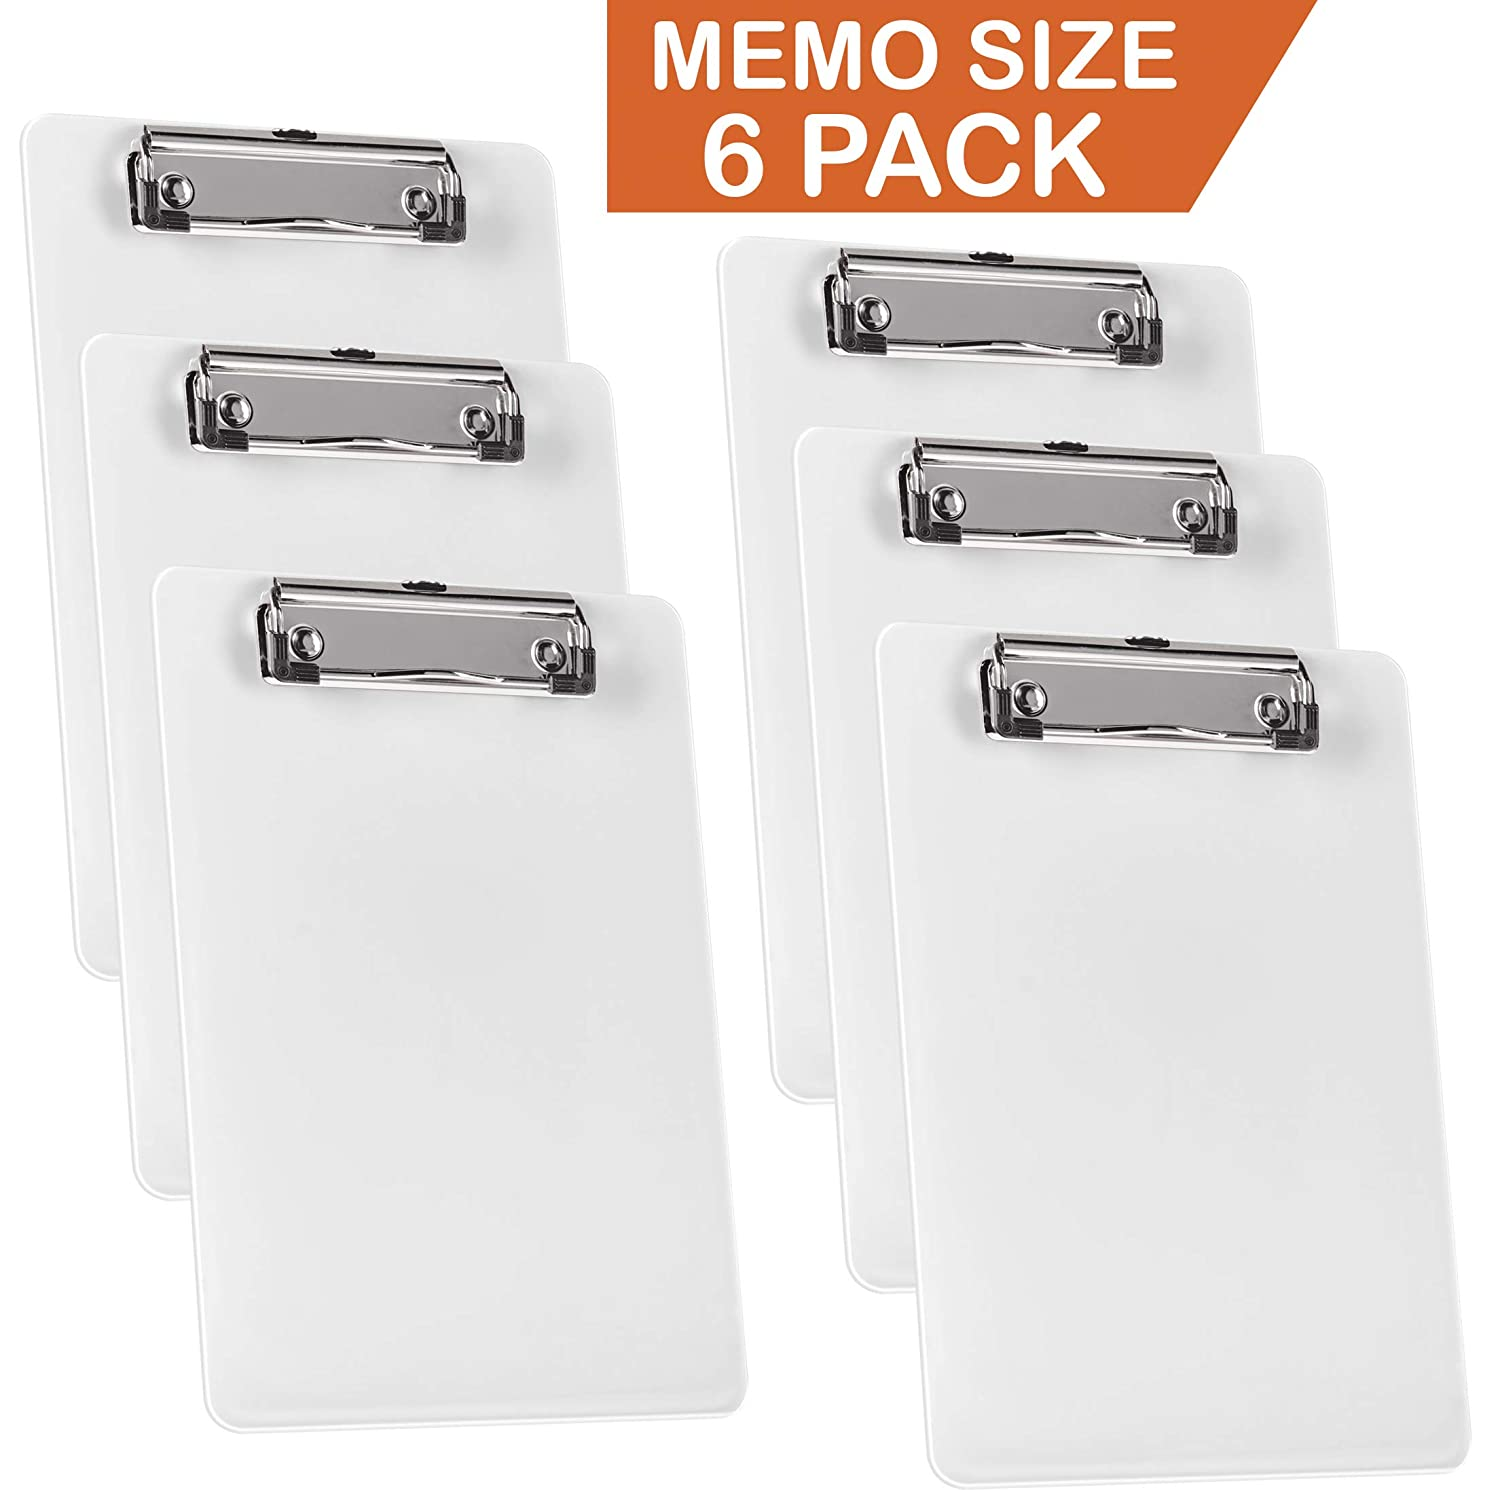 Acrimet Clipboard Memo Size A5 (9 1/4 X 6 1/4) Low Profile Clip (Plastic) (White Color) (6 Pack) 137.C9.W